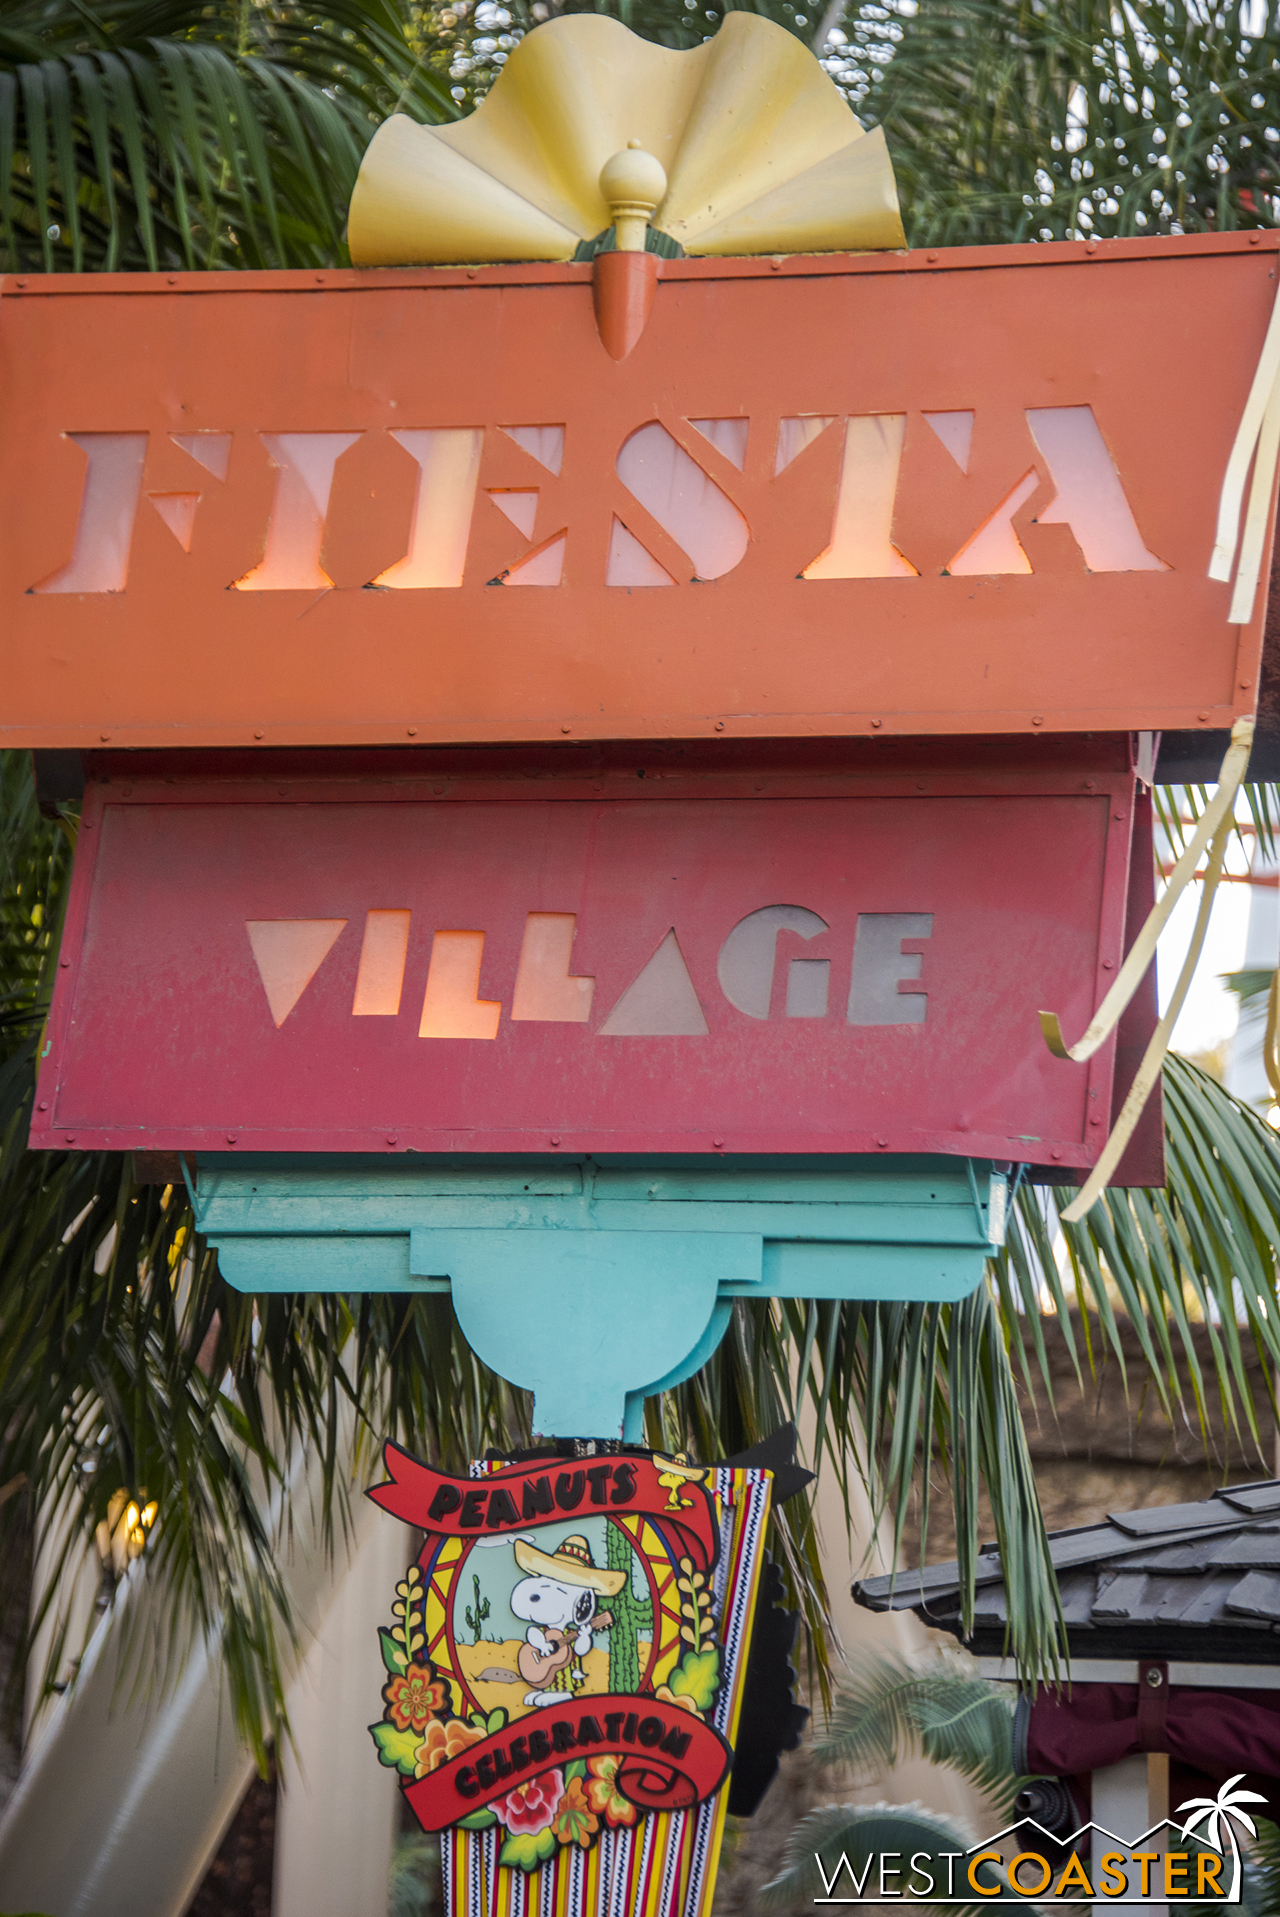 And Fiesta Village...